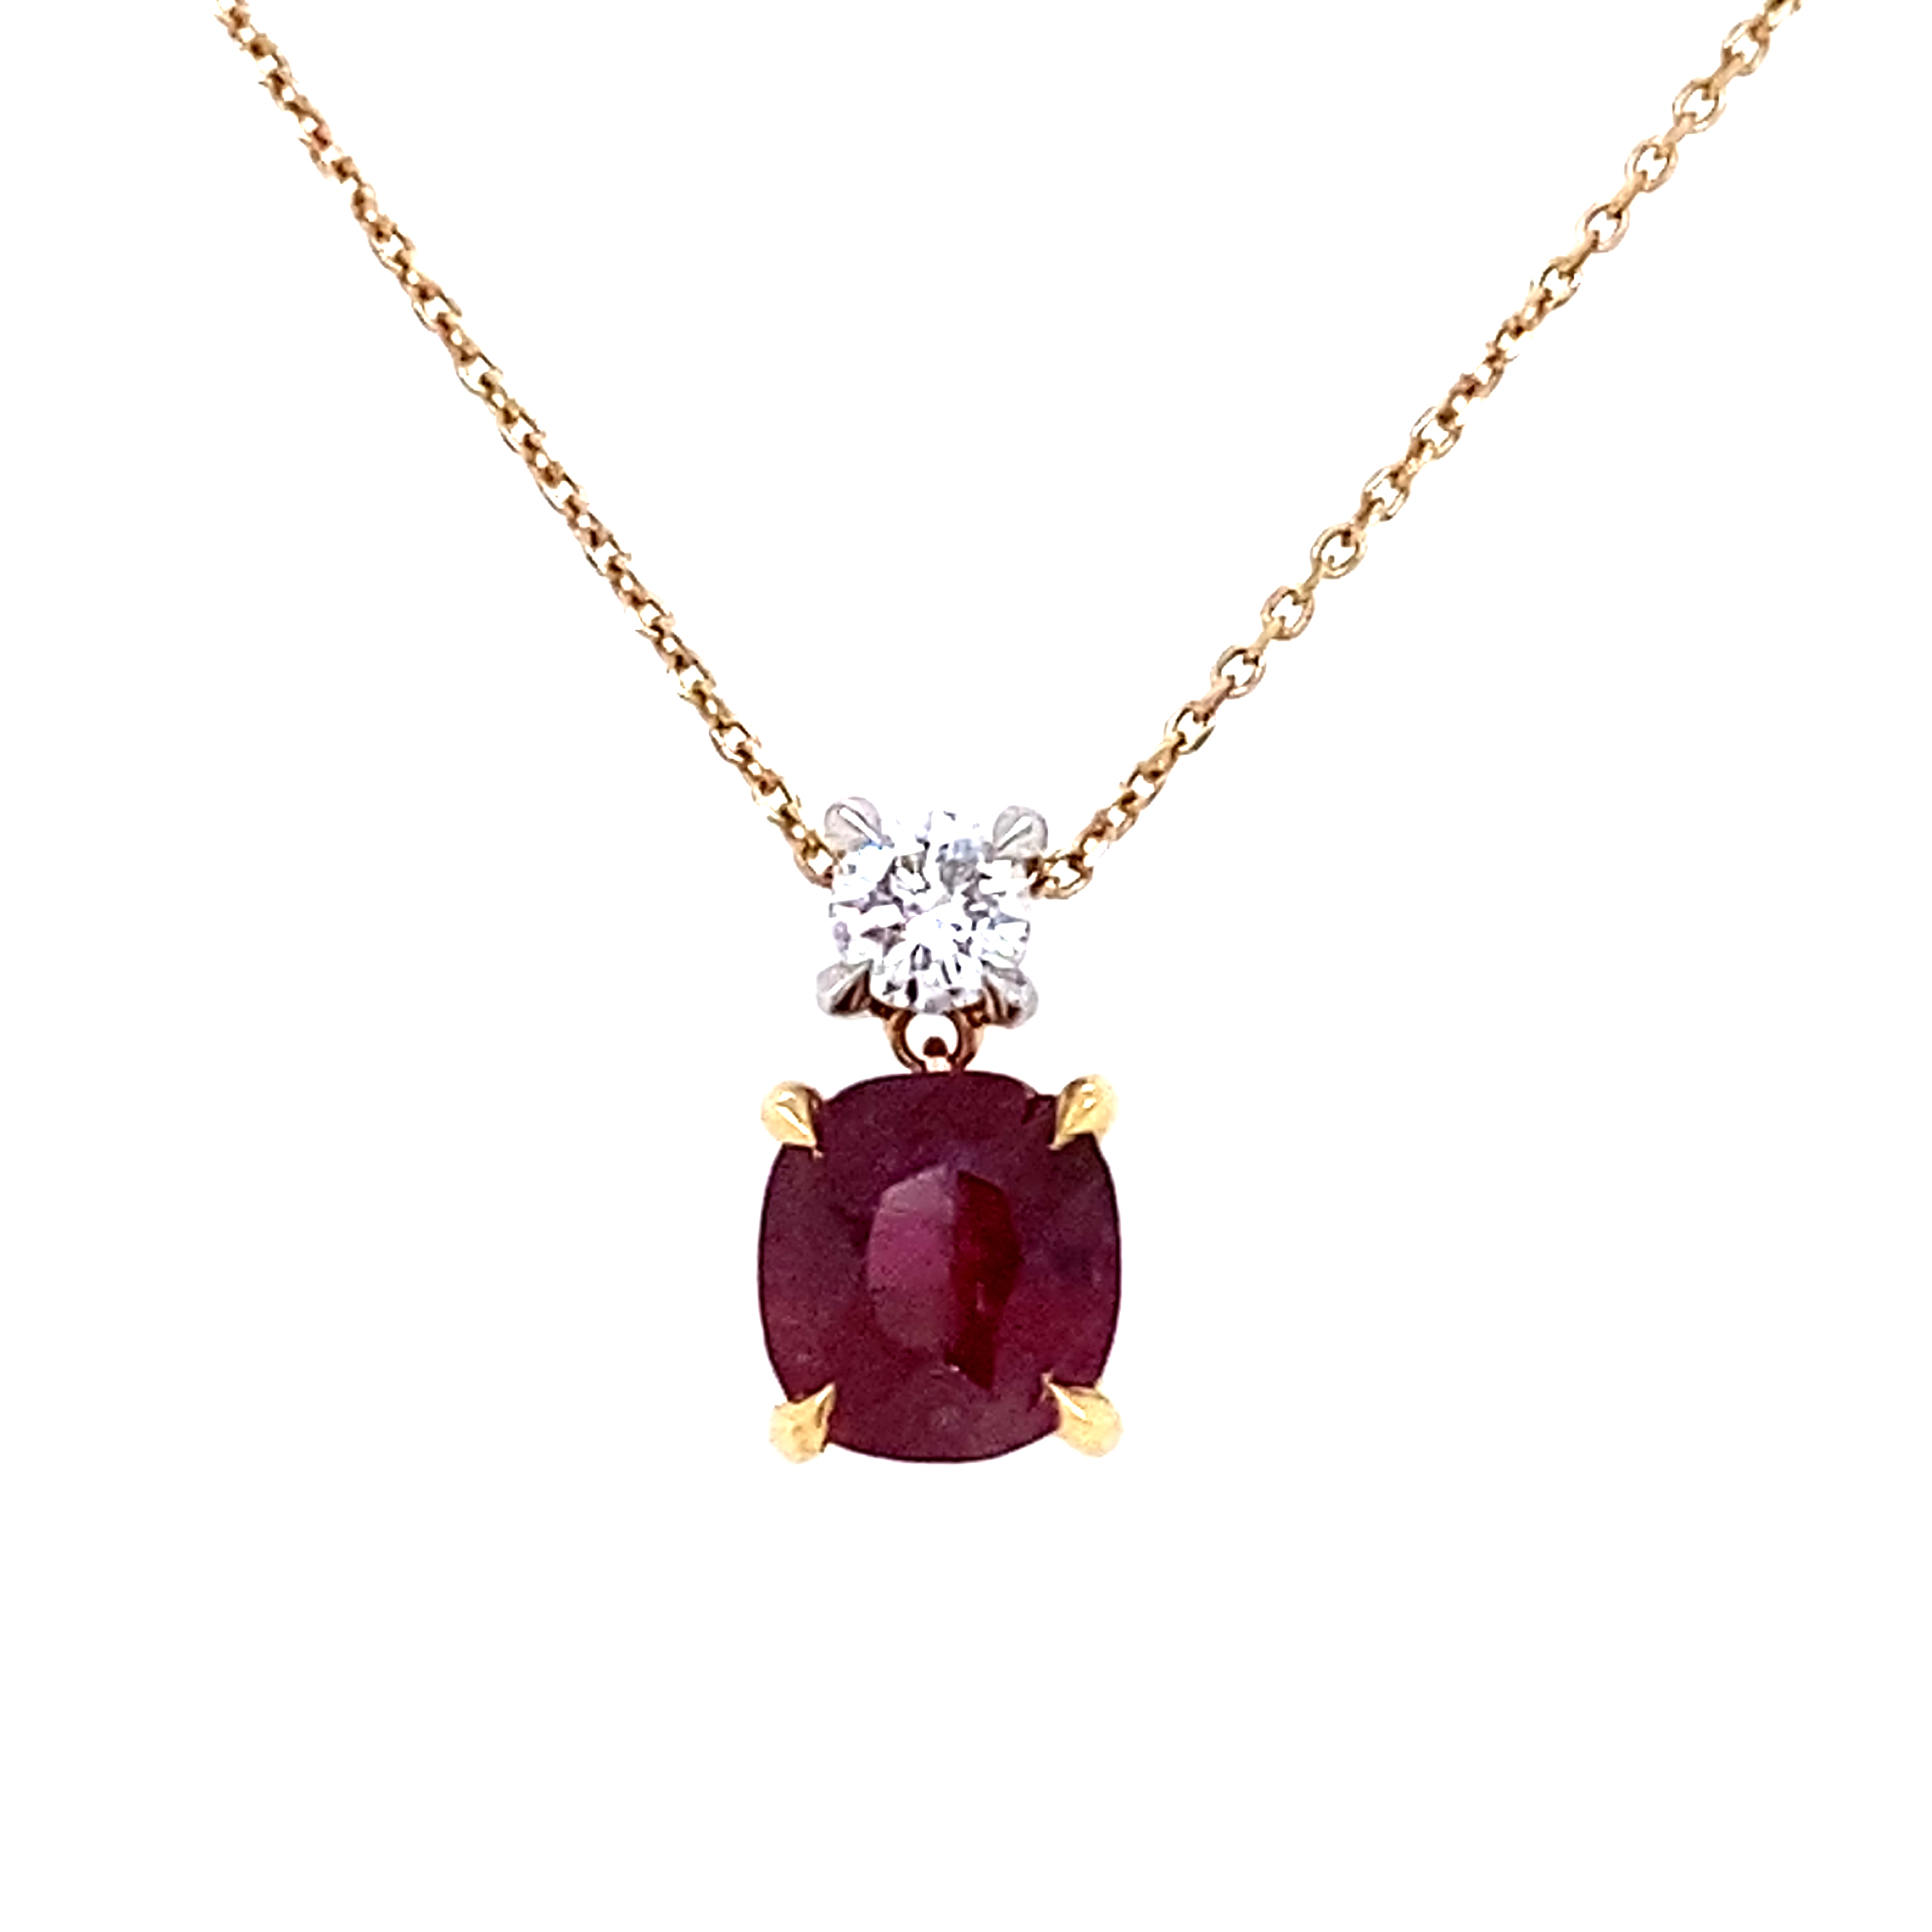 A Cushion Shaped Ruby Pendant with A diamond Accent